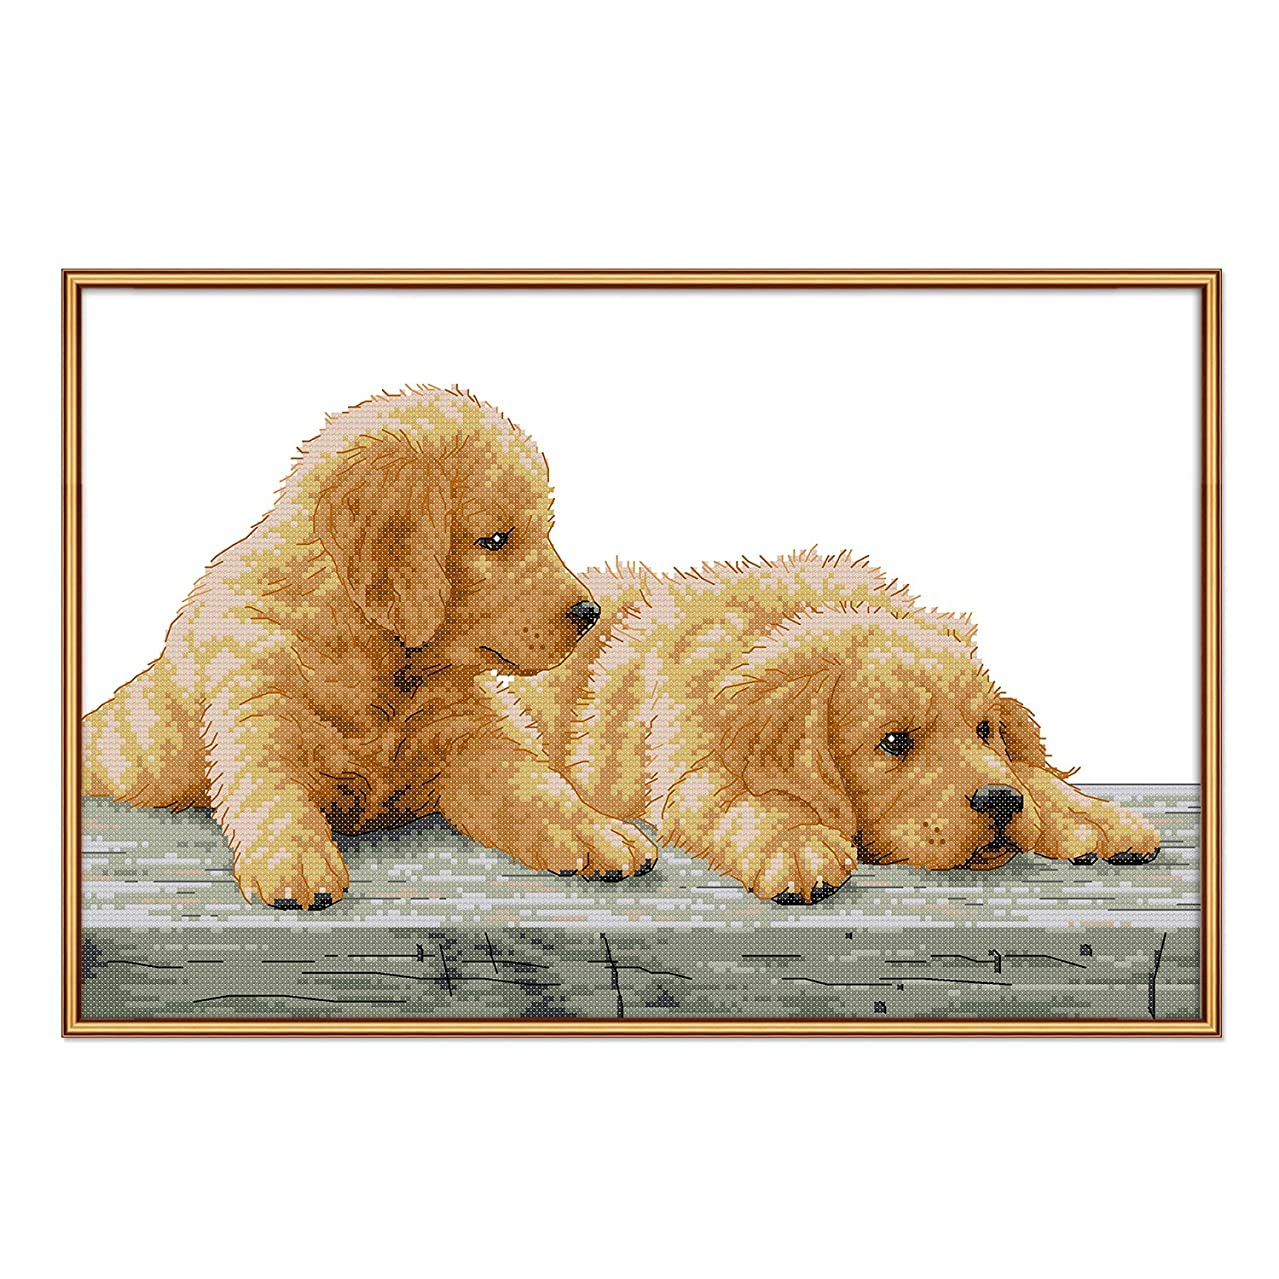 Stamped Cross Stitch Kits with Pre-Printed Patterns Cross Stitch Kits Beginner Adult Cross Stitching Stamped Kits, Embroidery Crafts Needlepoint Dog Brother Kits for Home Decorations